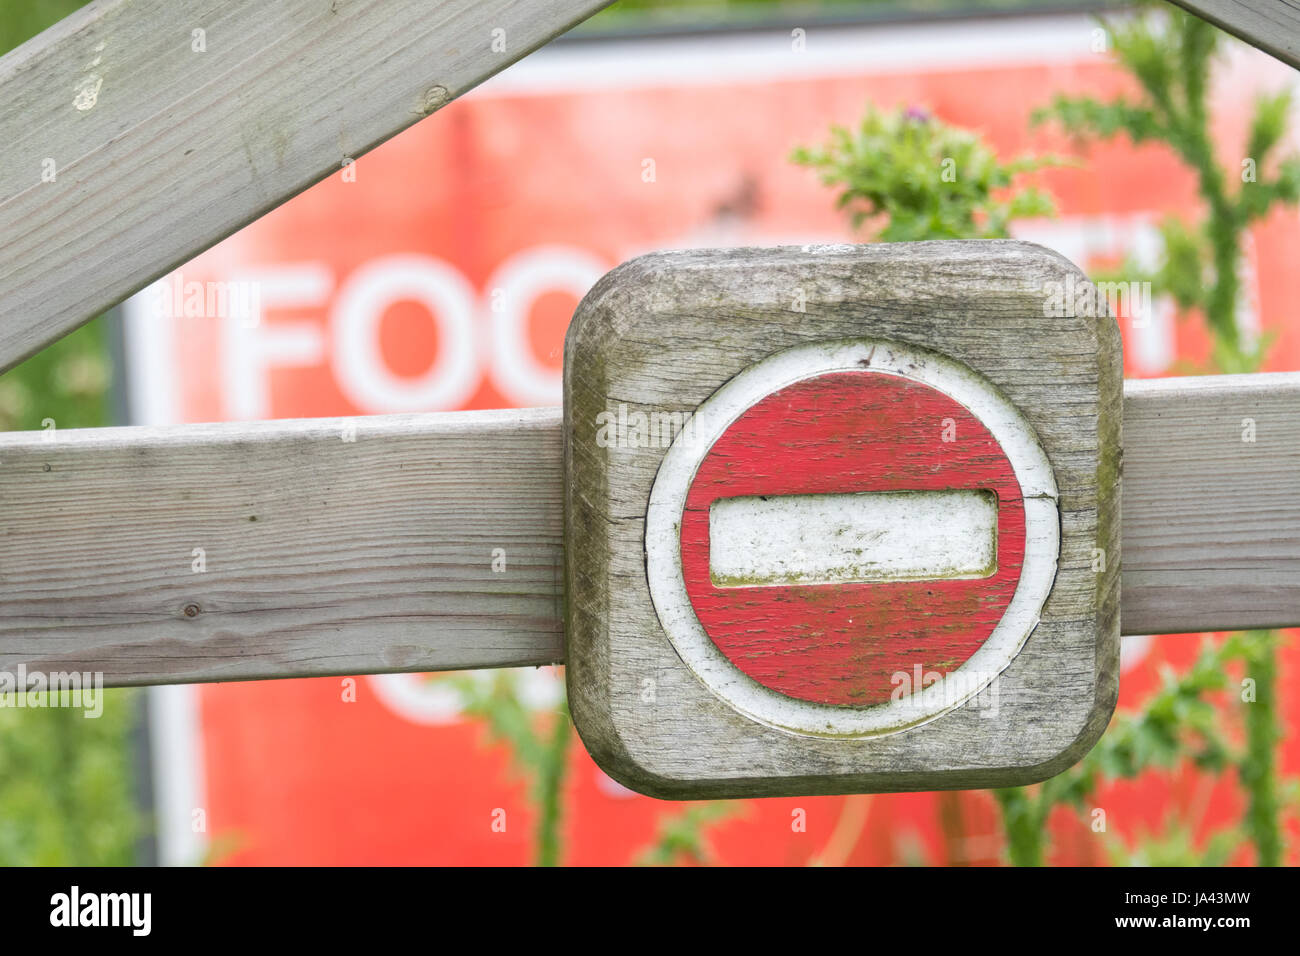 No entry sign at Rye Meads RSPB Reserve - Stock Image